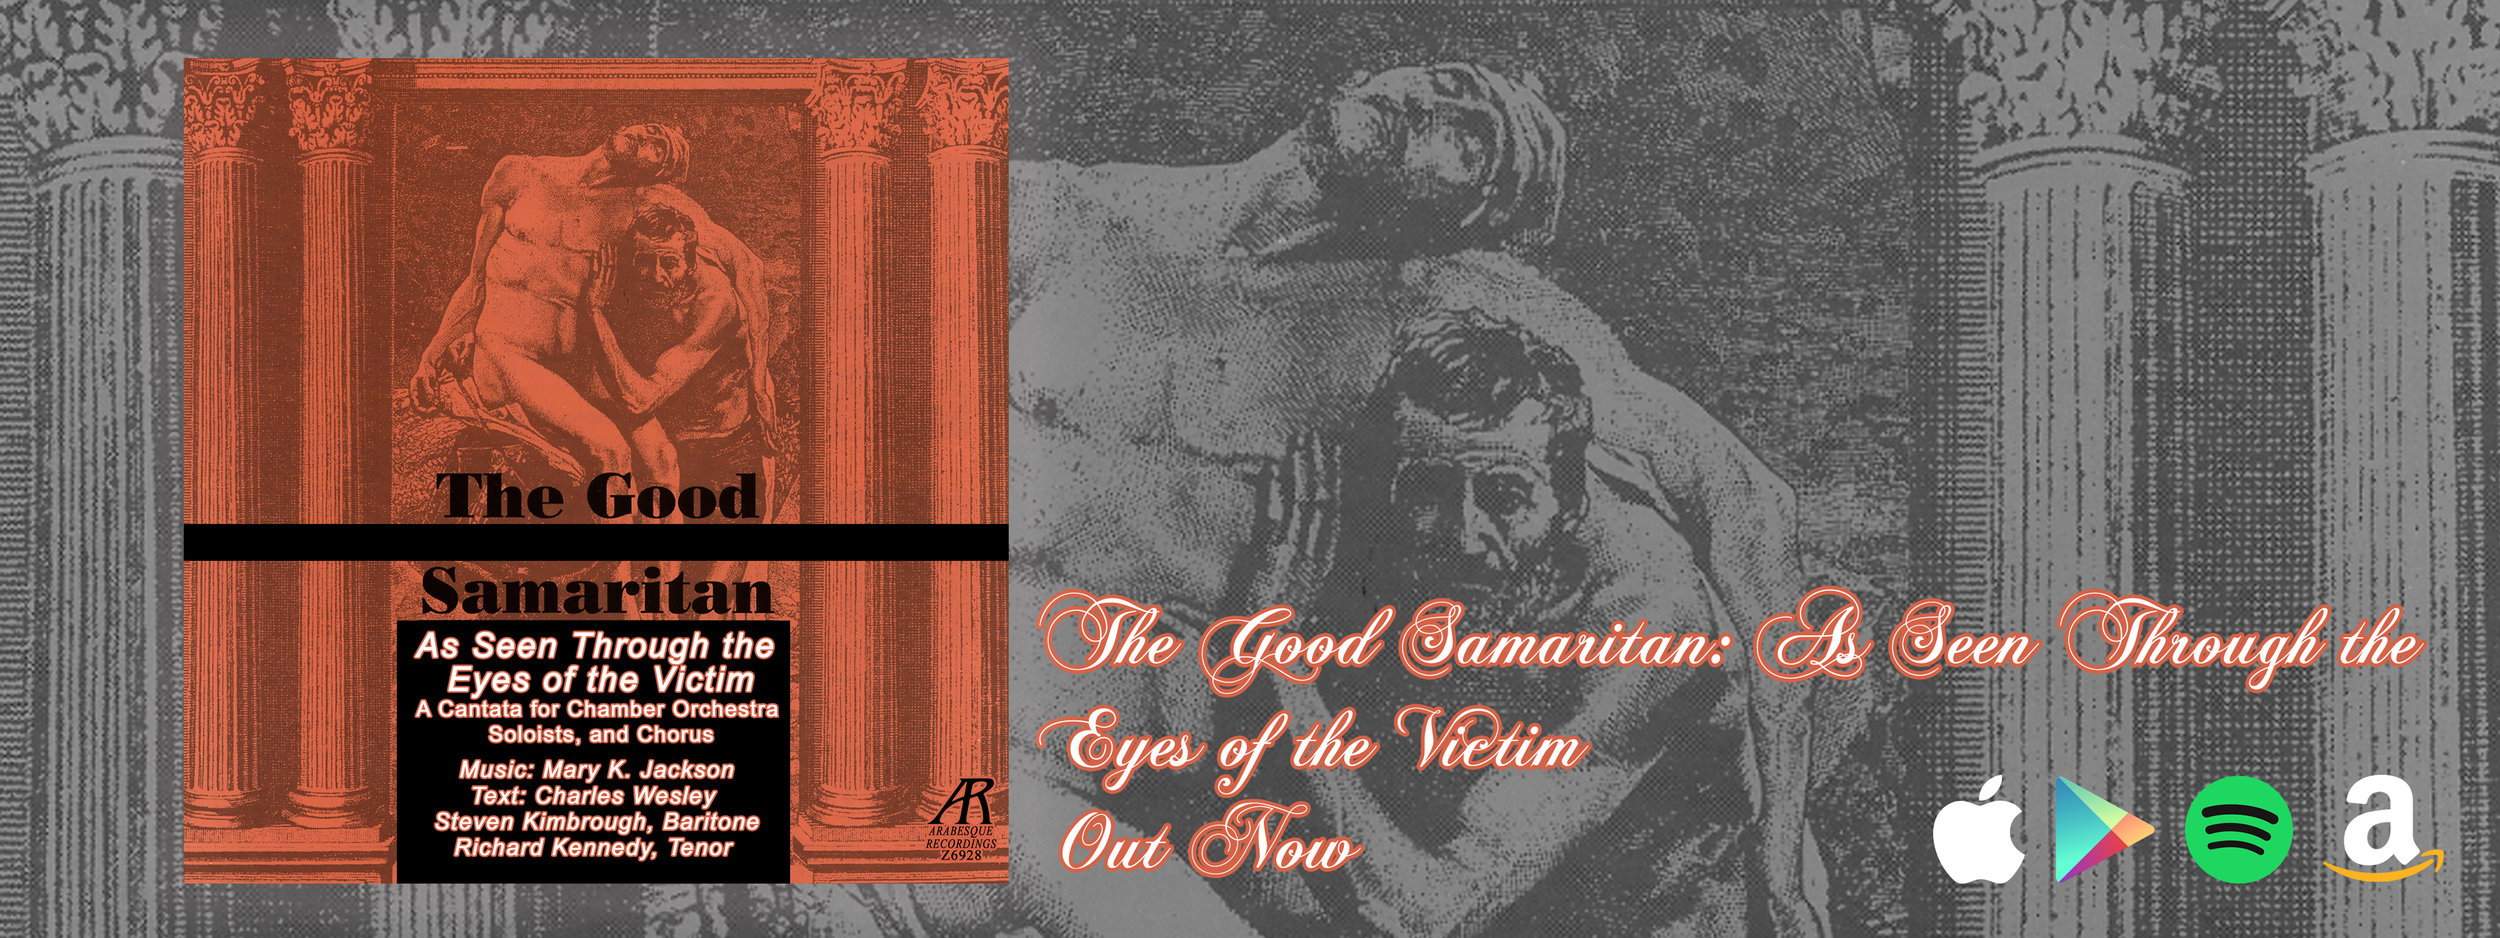 The Good Samaritan_Website Header.jpg